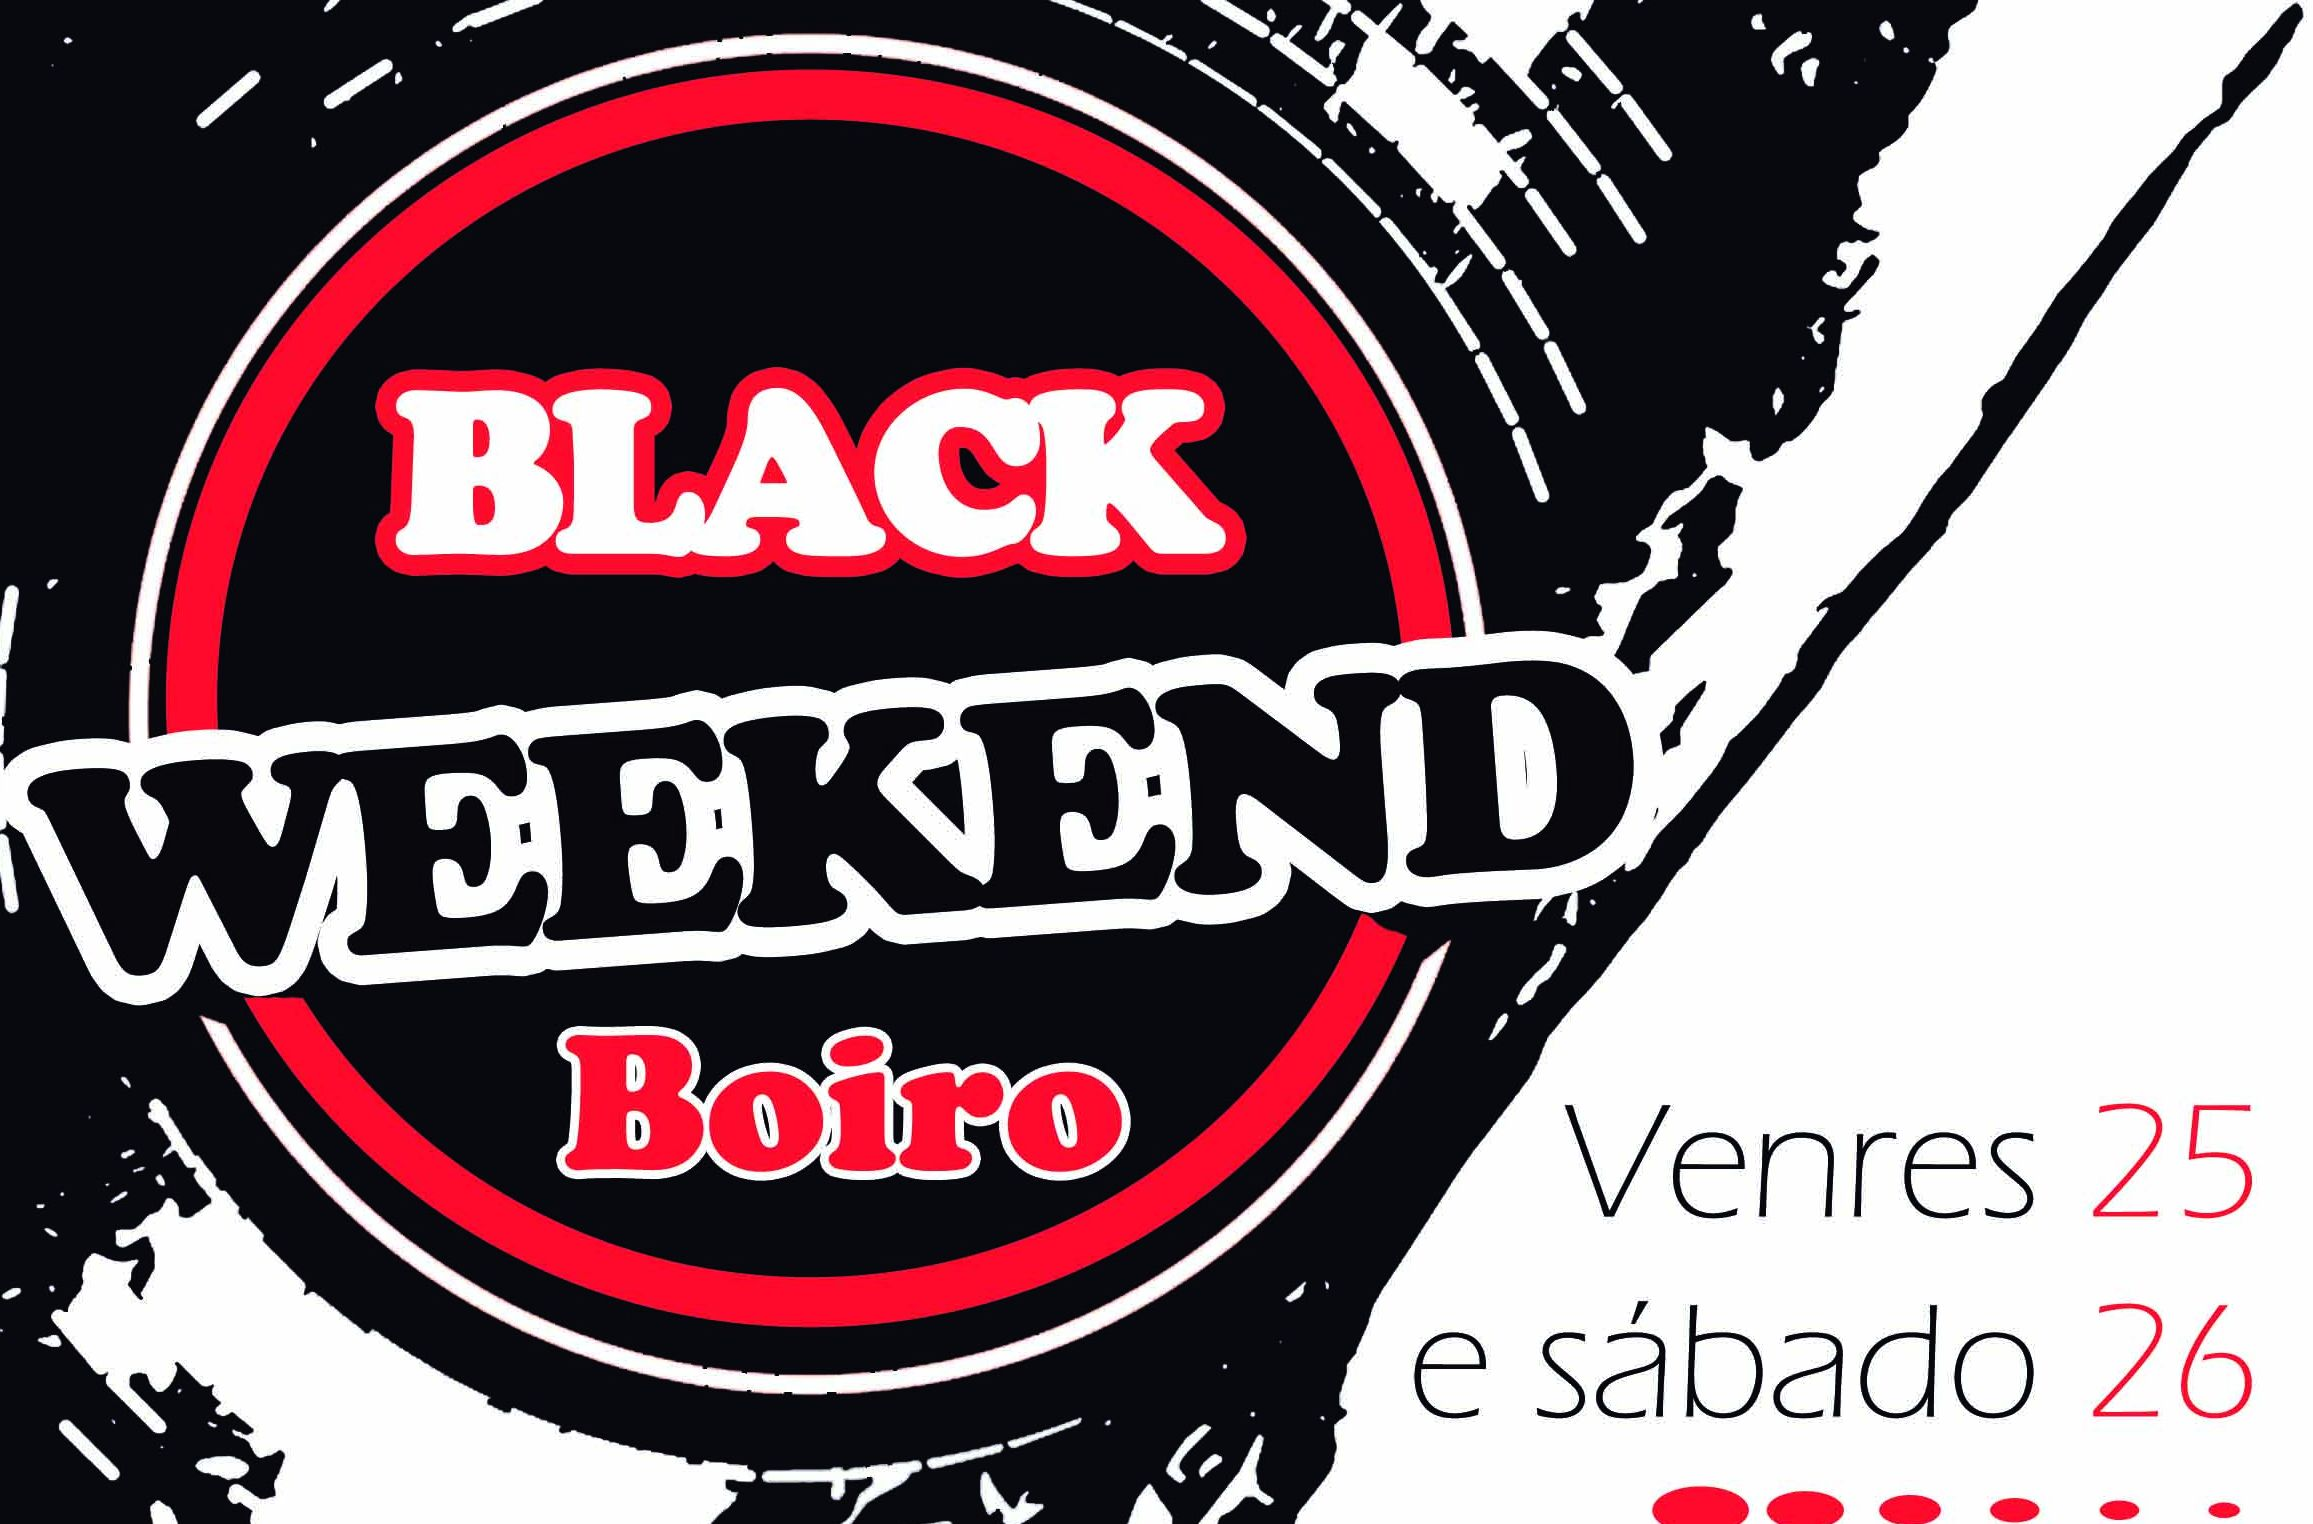 black weekend boiro